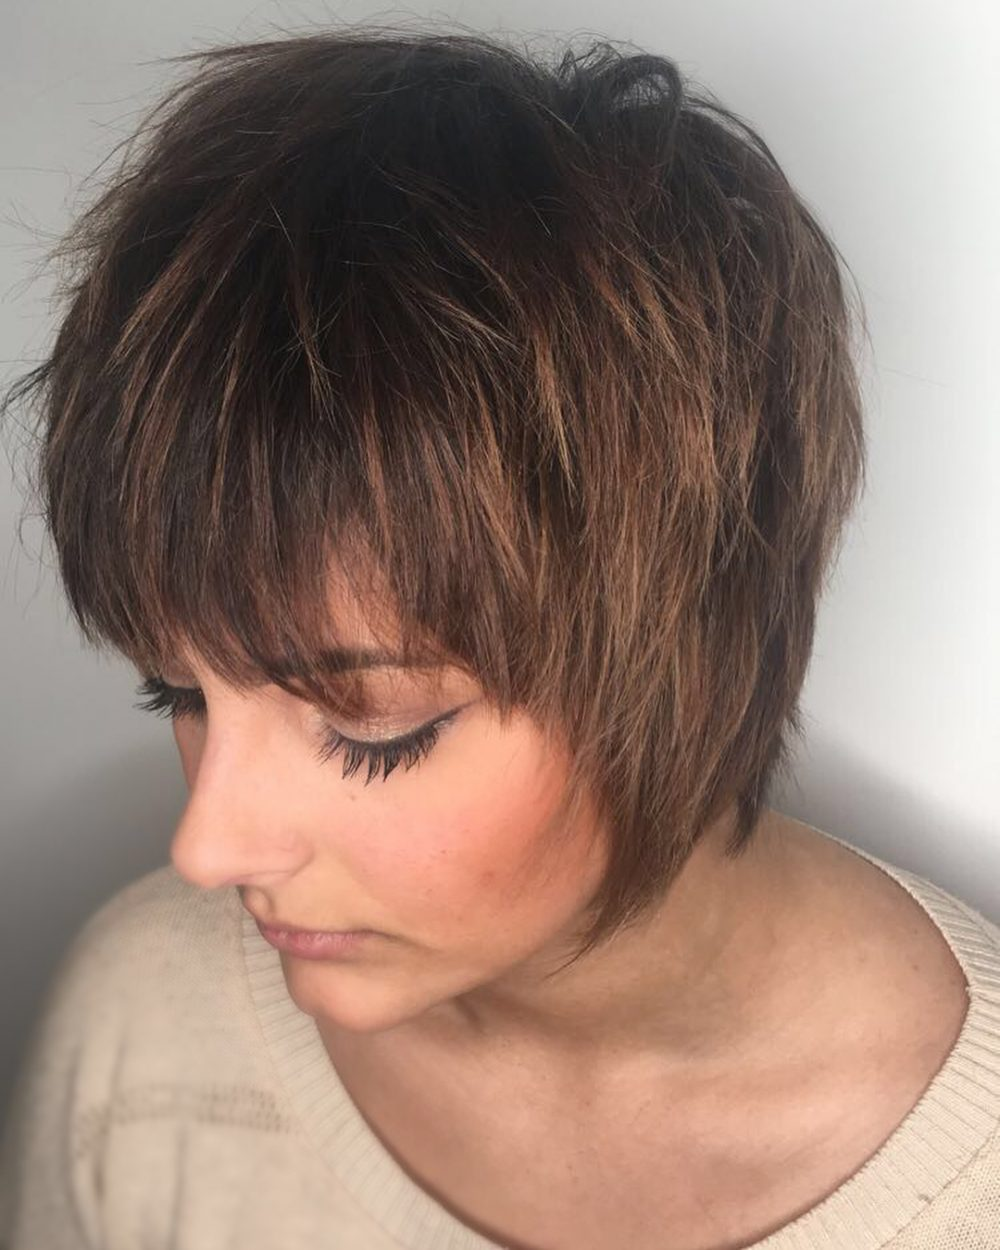 Top 27 Short Shag Hairstyles & Haircuts Right Now